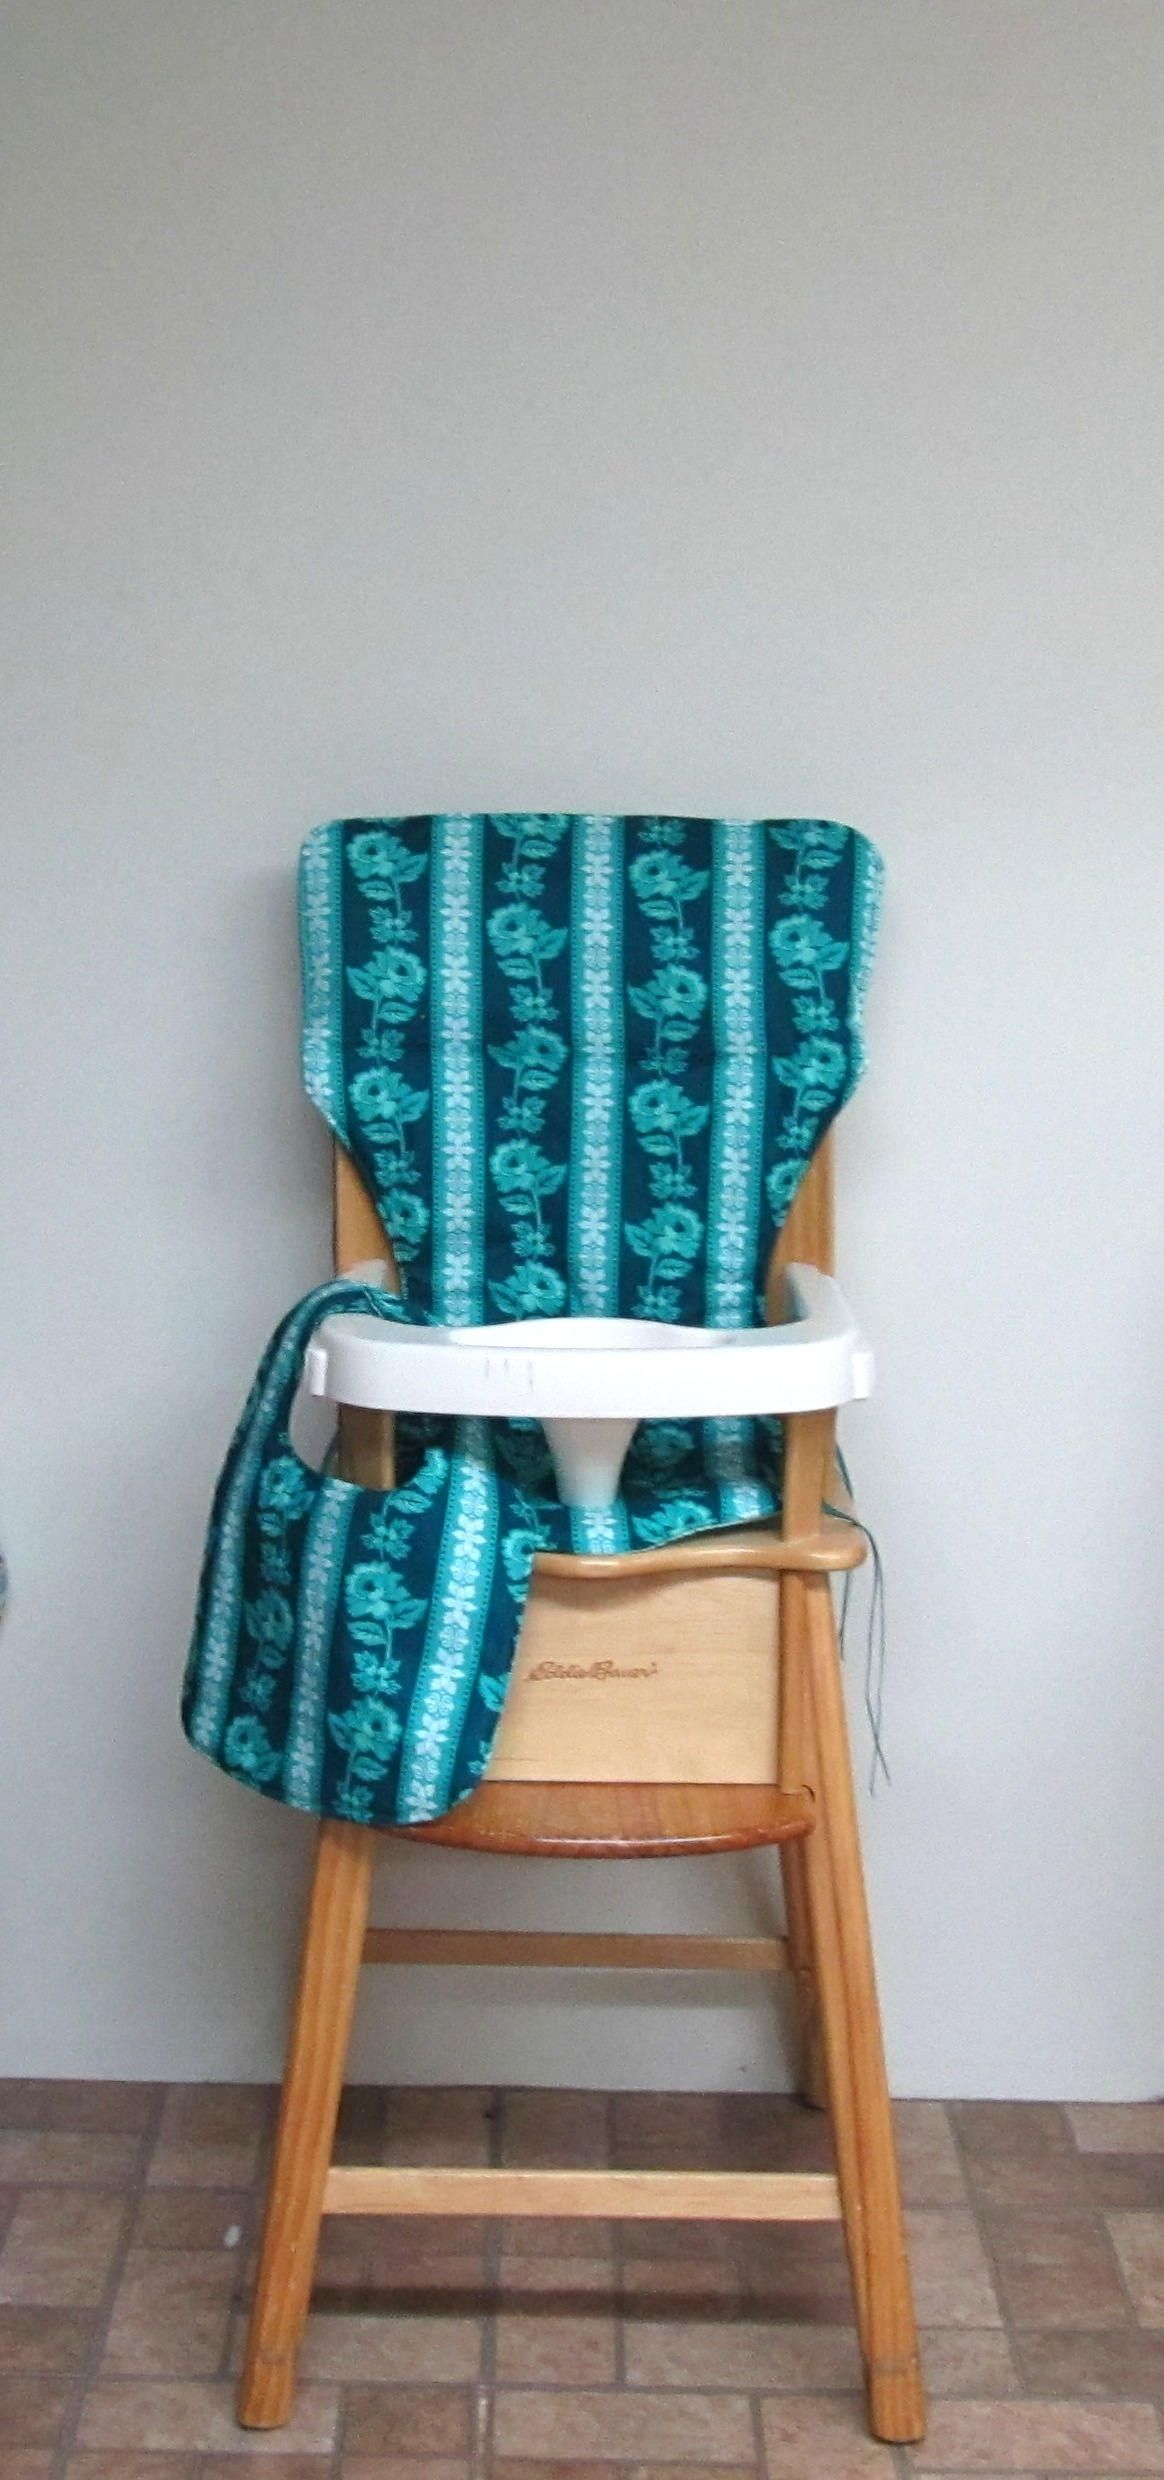 ed bauer wooden high chair pad replacement chair cover feeding